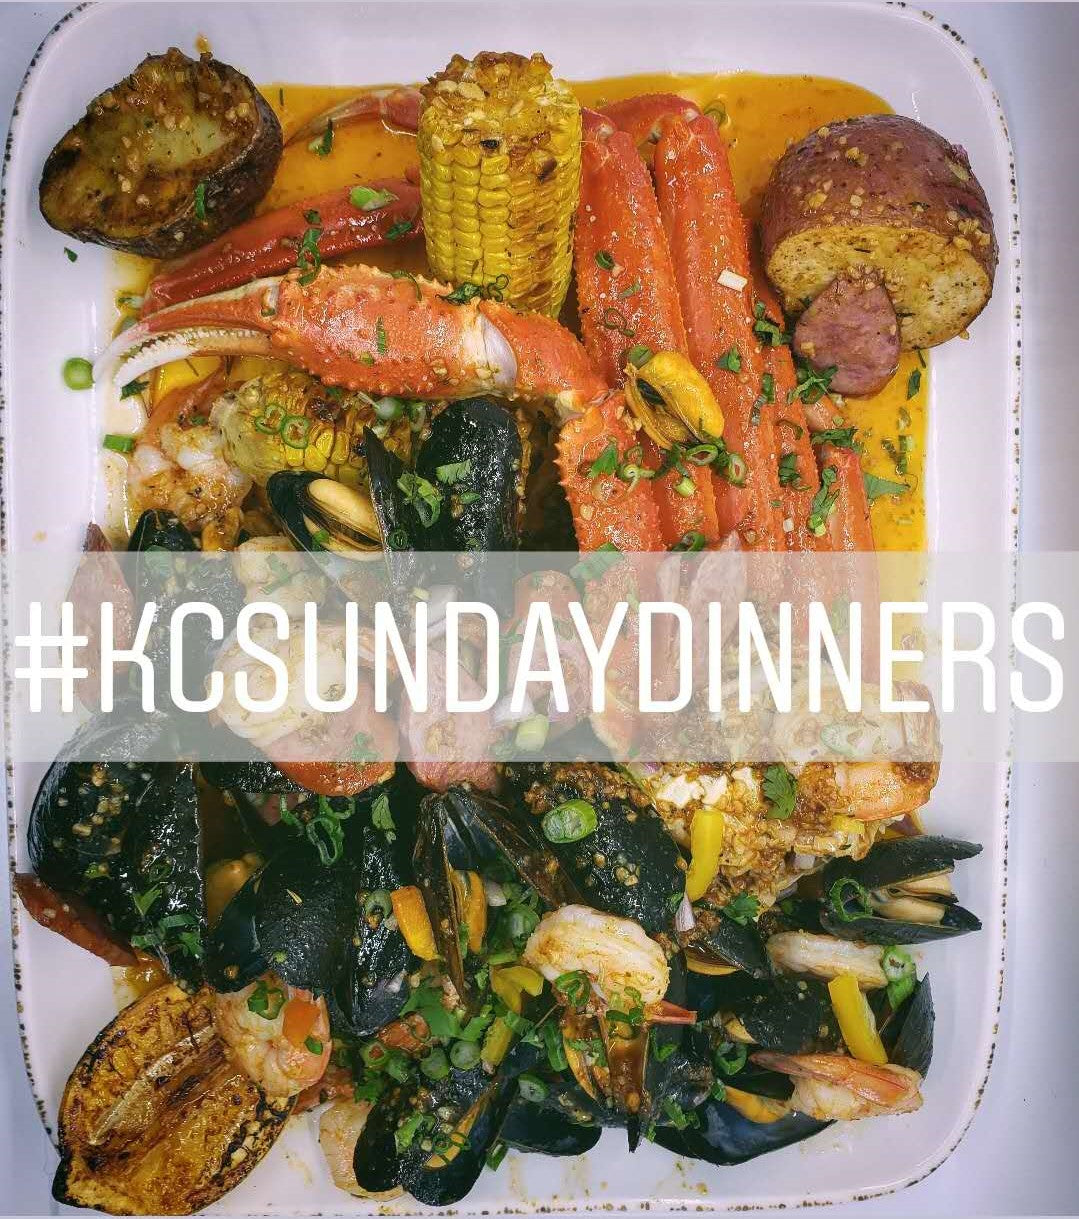 Sunday Dinner 5.10 - Dear Mama...I'm on a Boat! Seafood Boil 5p - 7p